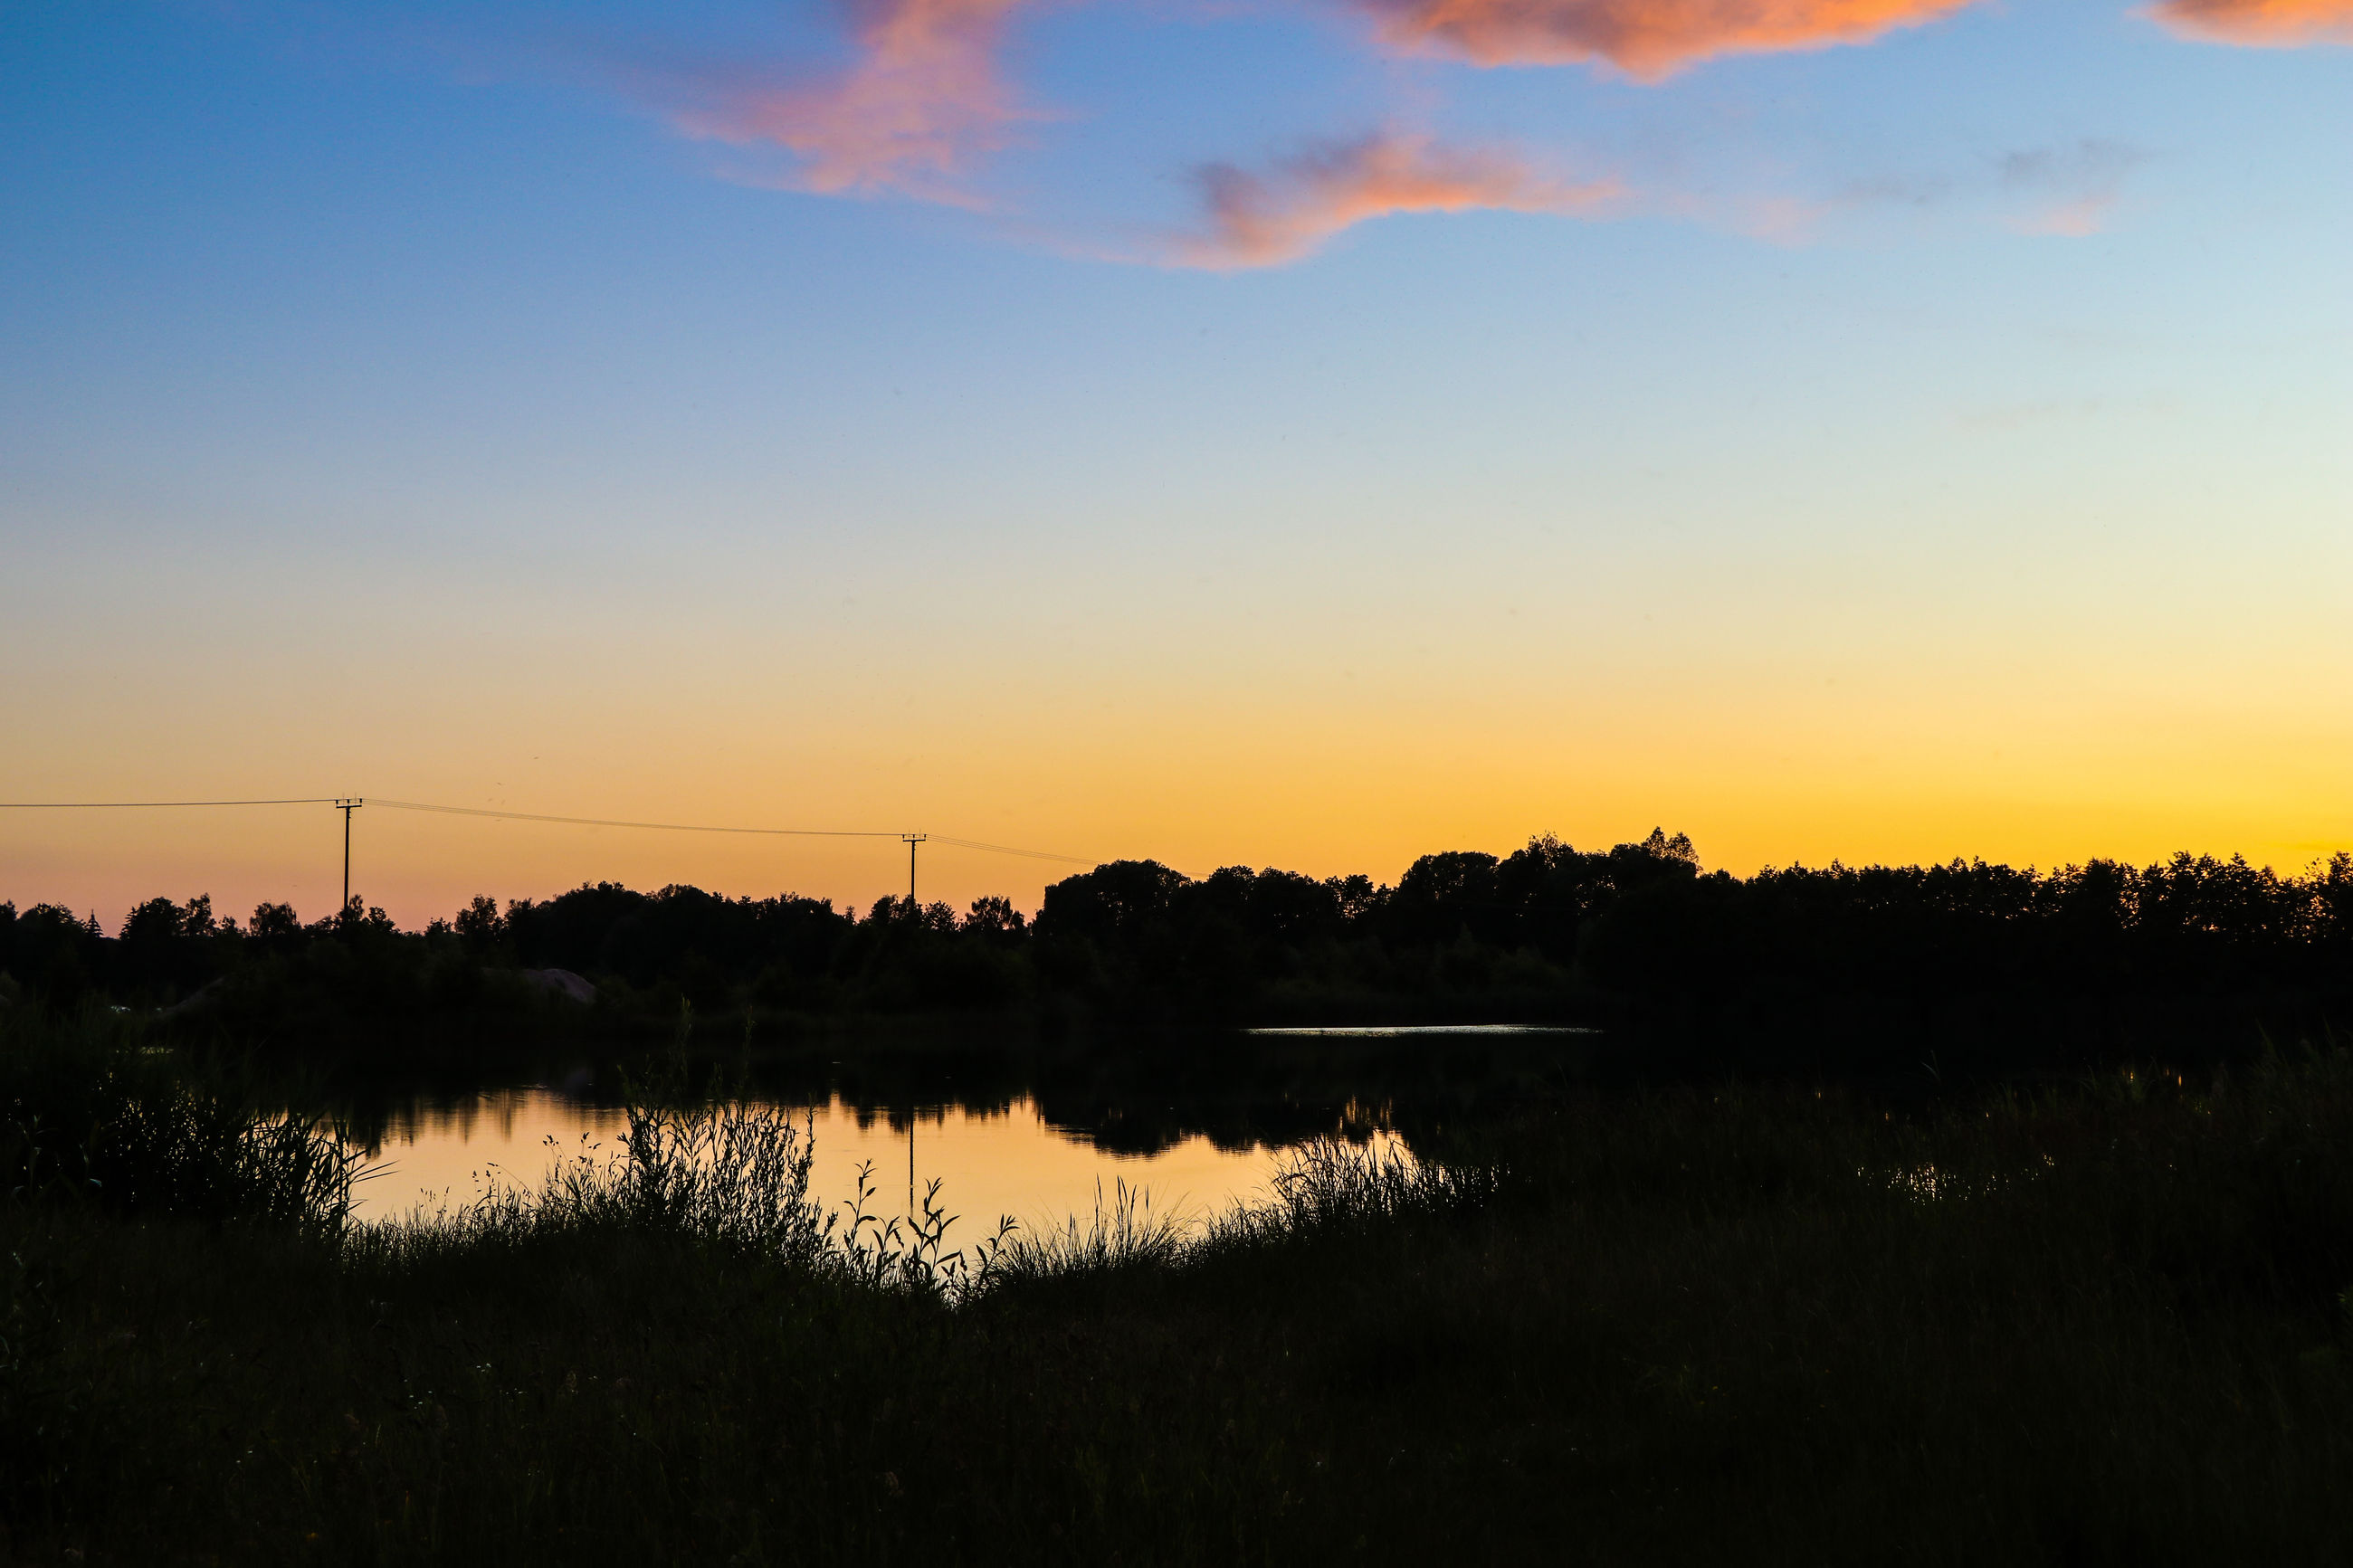 sky, sunset, beauty in nature, scenics - nature, tranquility, water, tranquil scene, nature, dawn, plant, environment, landscape, reflection, cloud, afterglow, silhouette, lake, no people, evening, orange color, horizon, tree, idyllic, sun, non-urban scene, outdoors, grass, land, sunlight, twilight, red sky at morning, field